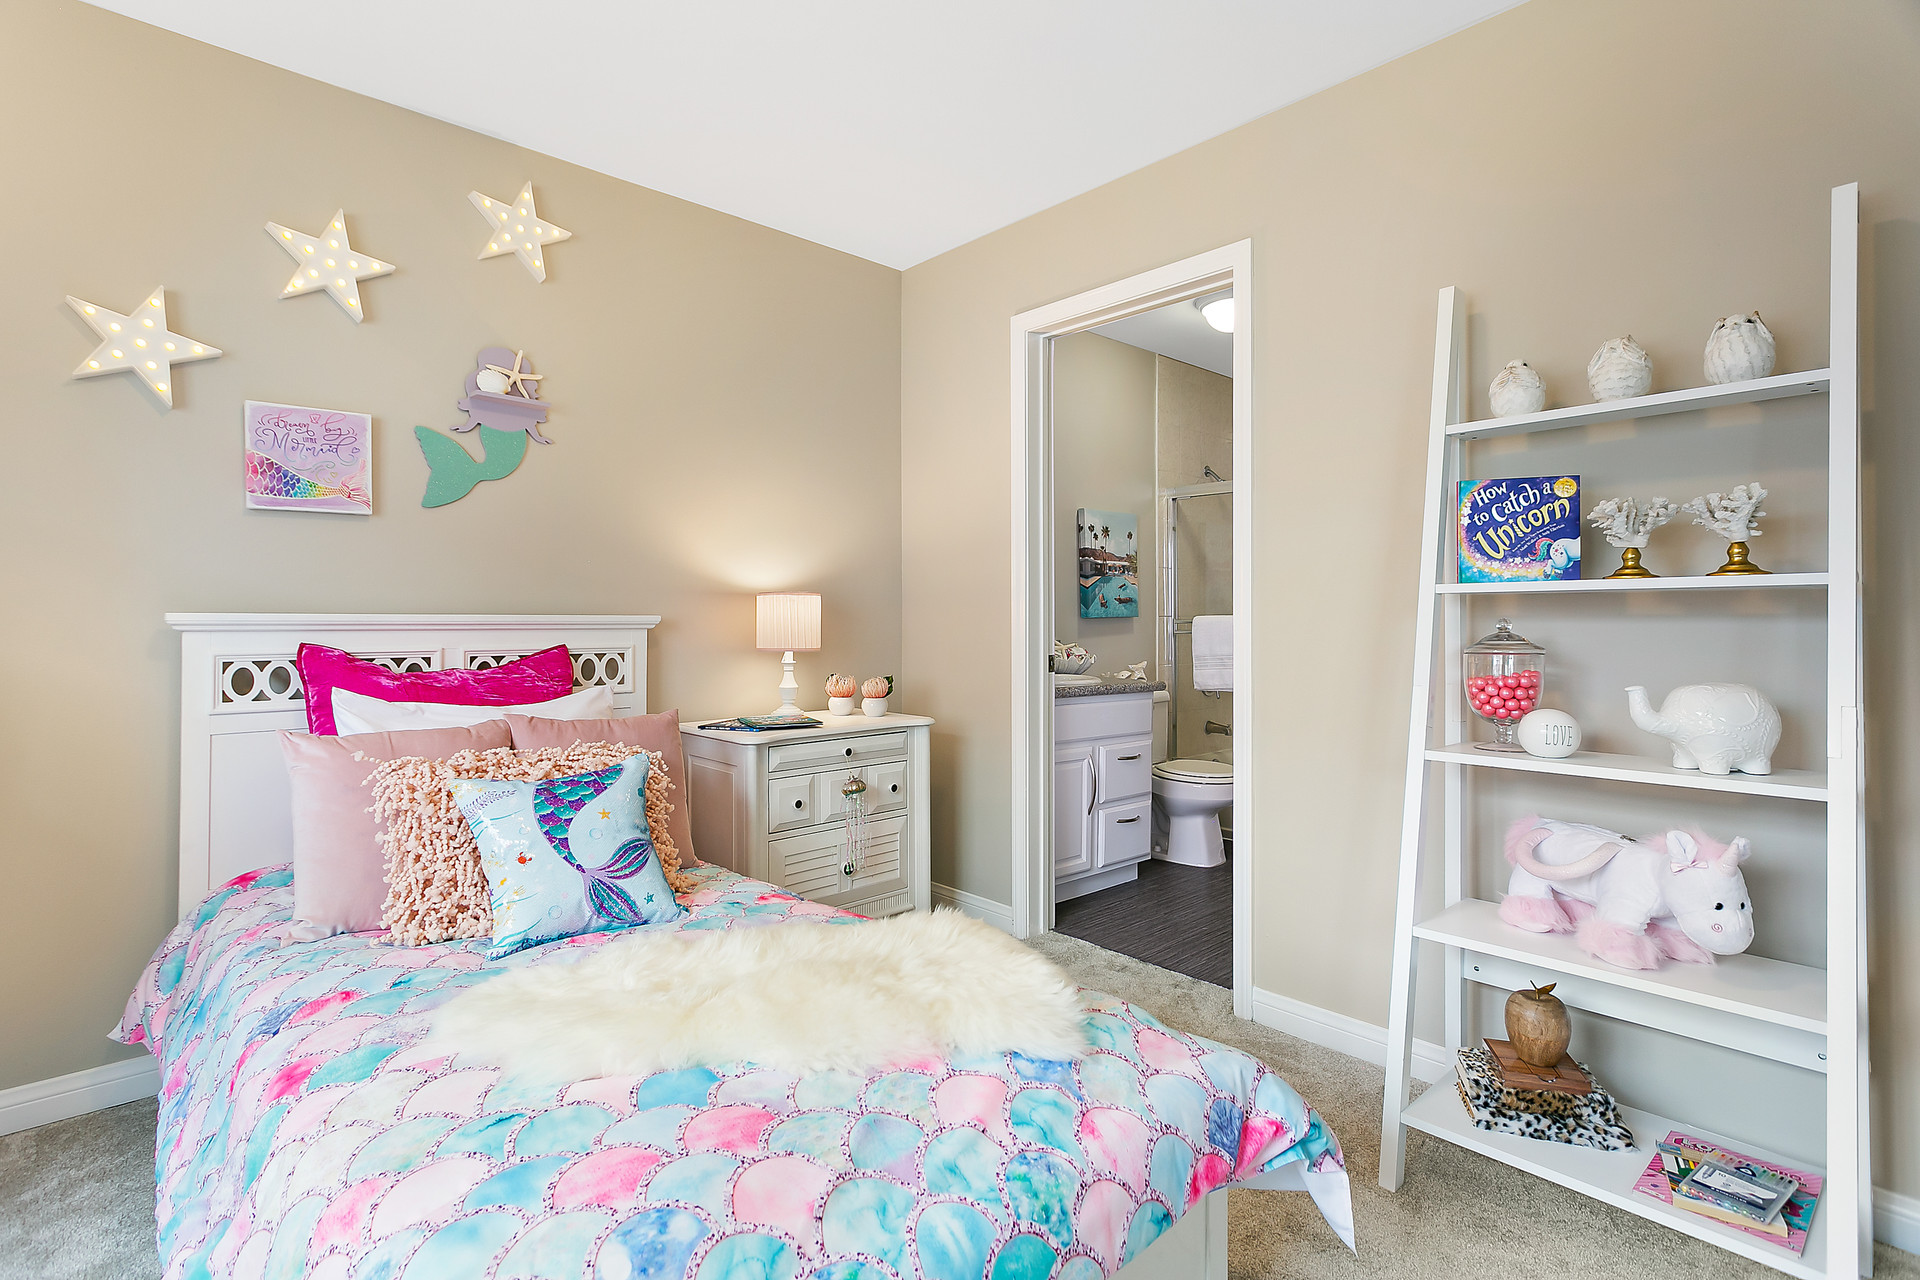 How to Create a Mermaid Bedroom With Boo